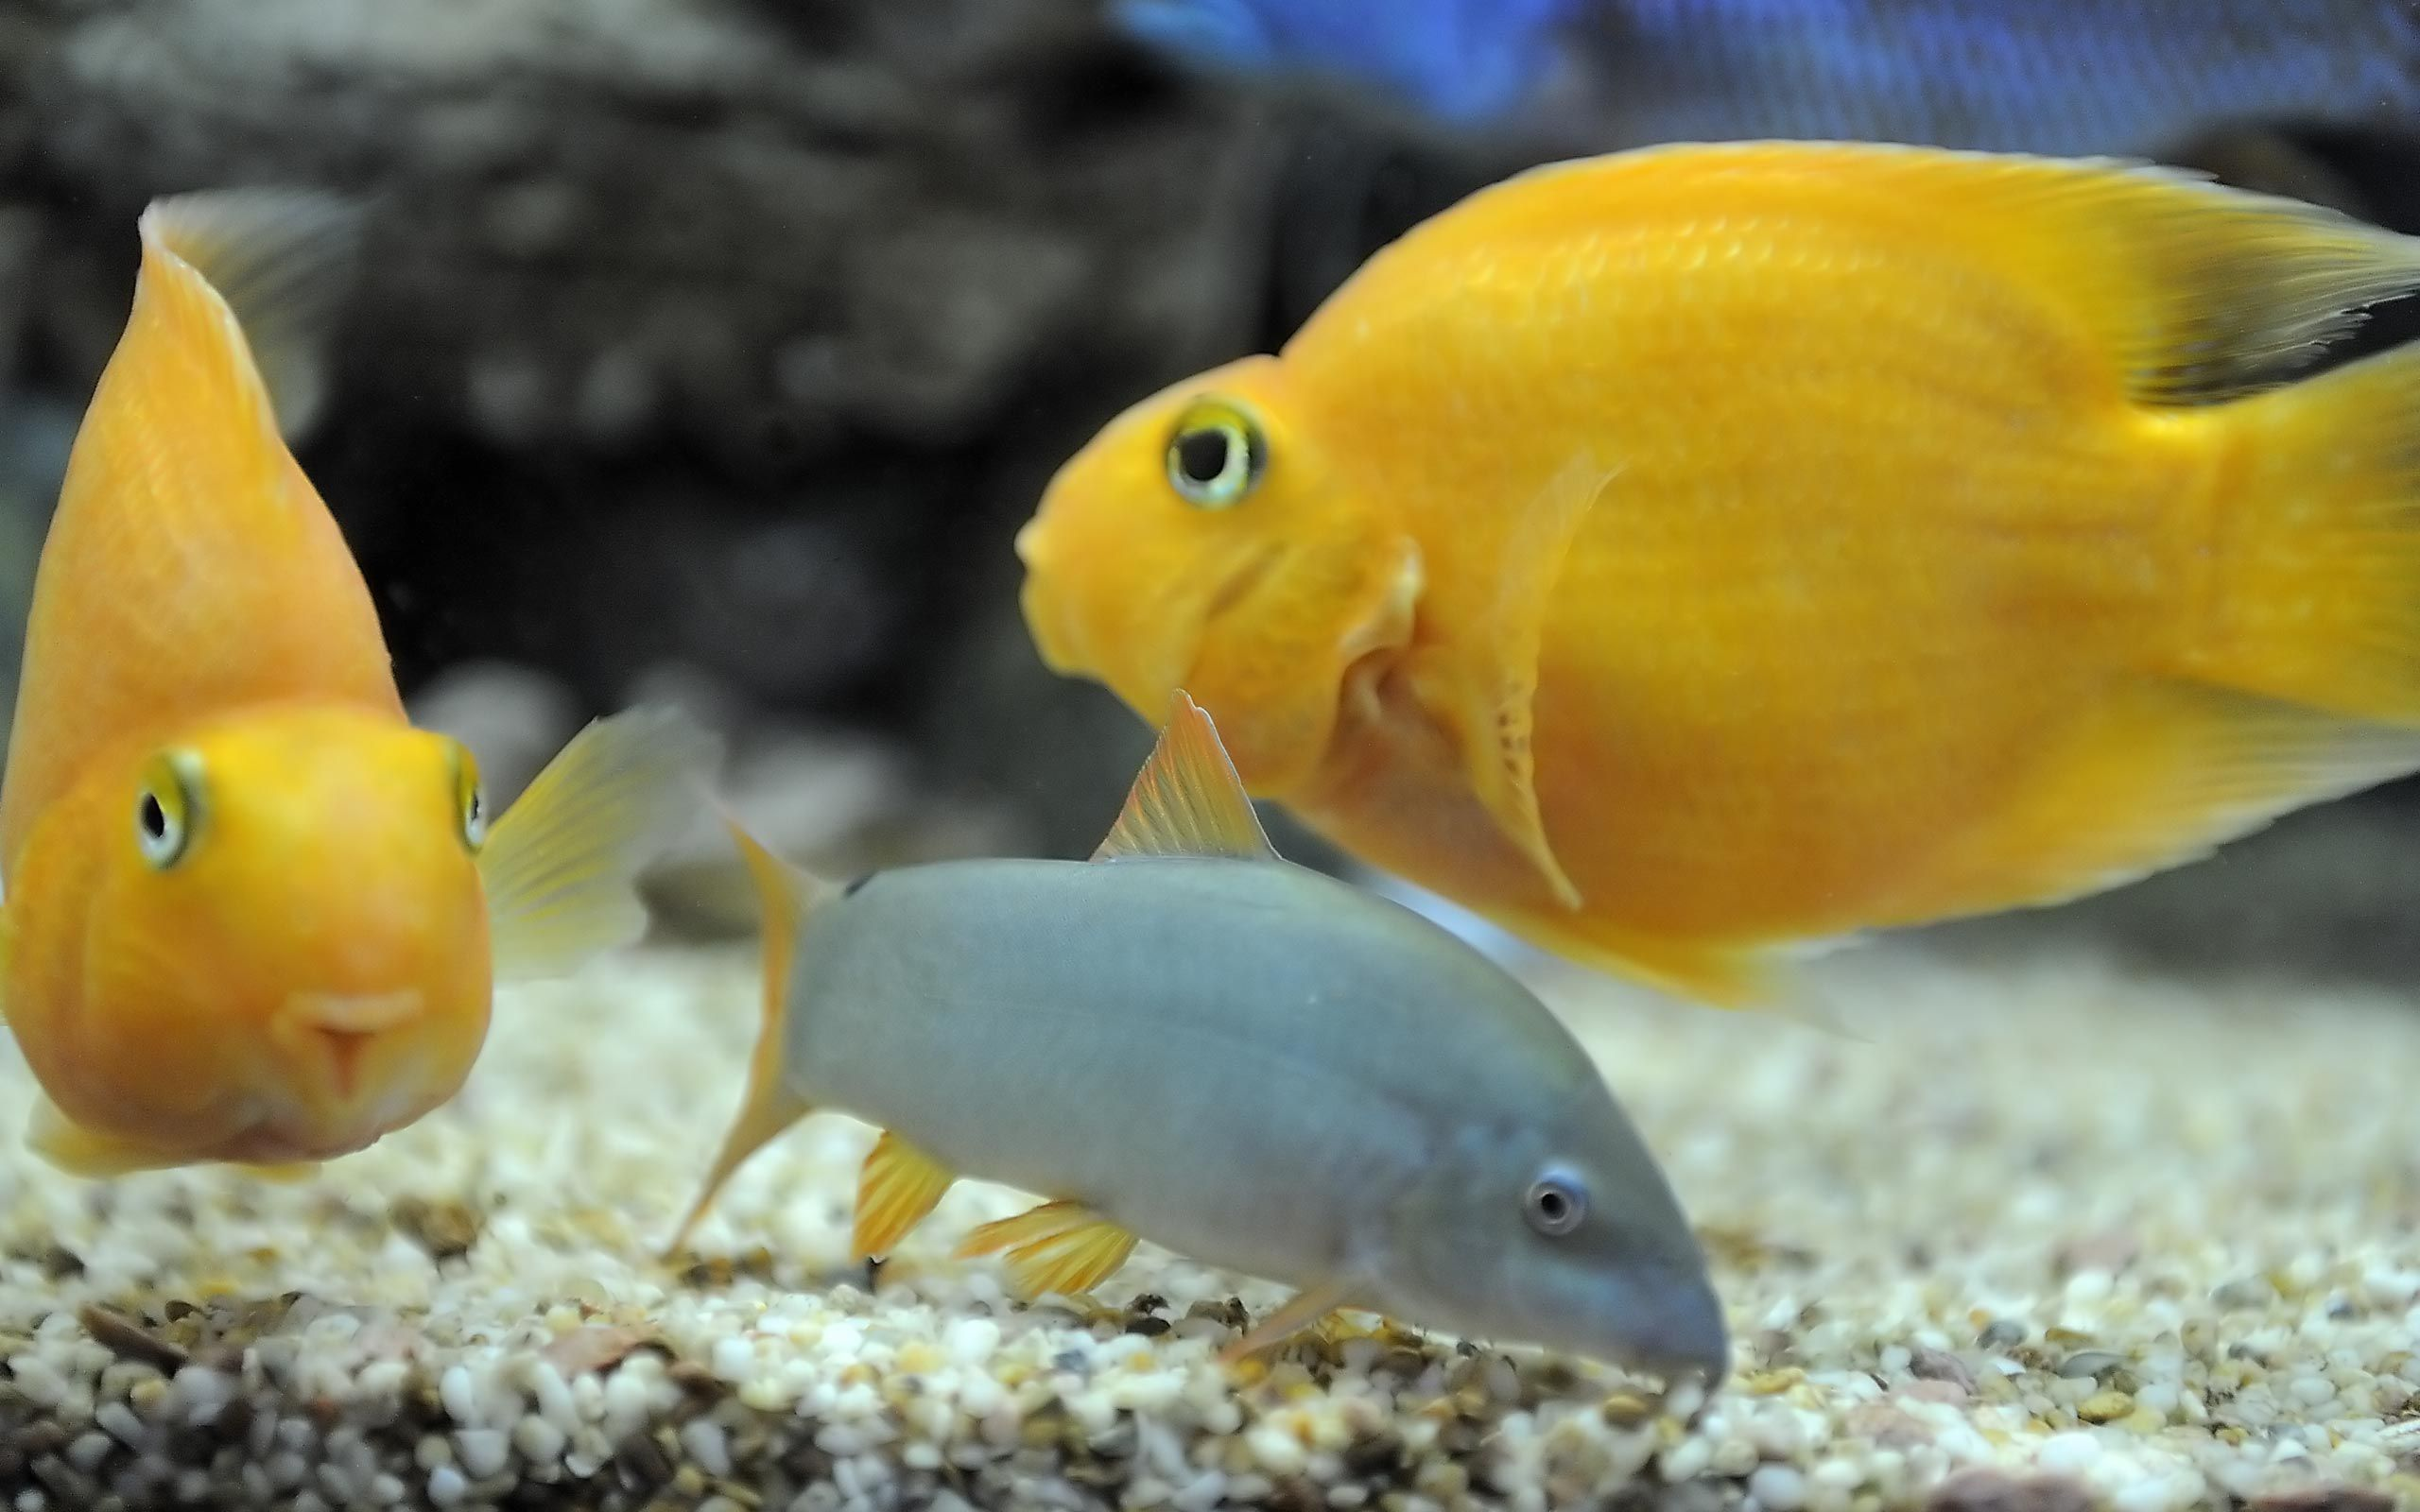 Freshwater fish for aquariums blood parrot cichlid for Freshwater exotic fish